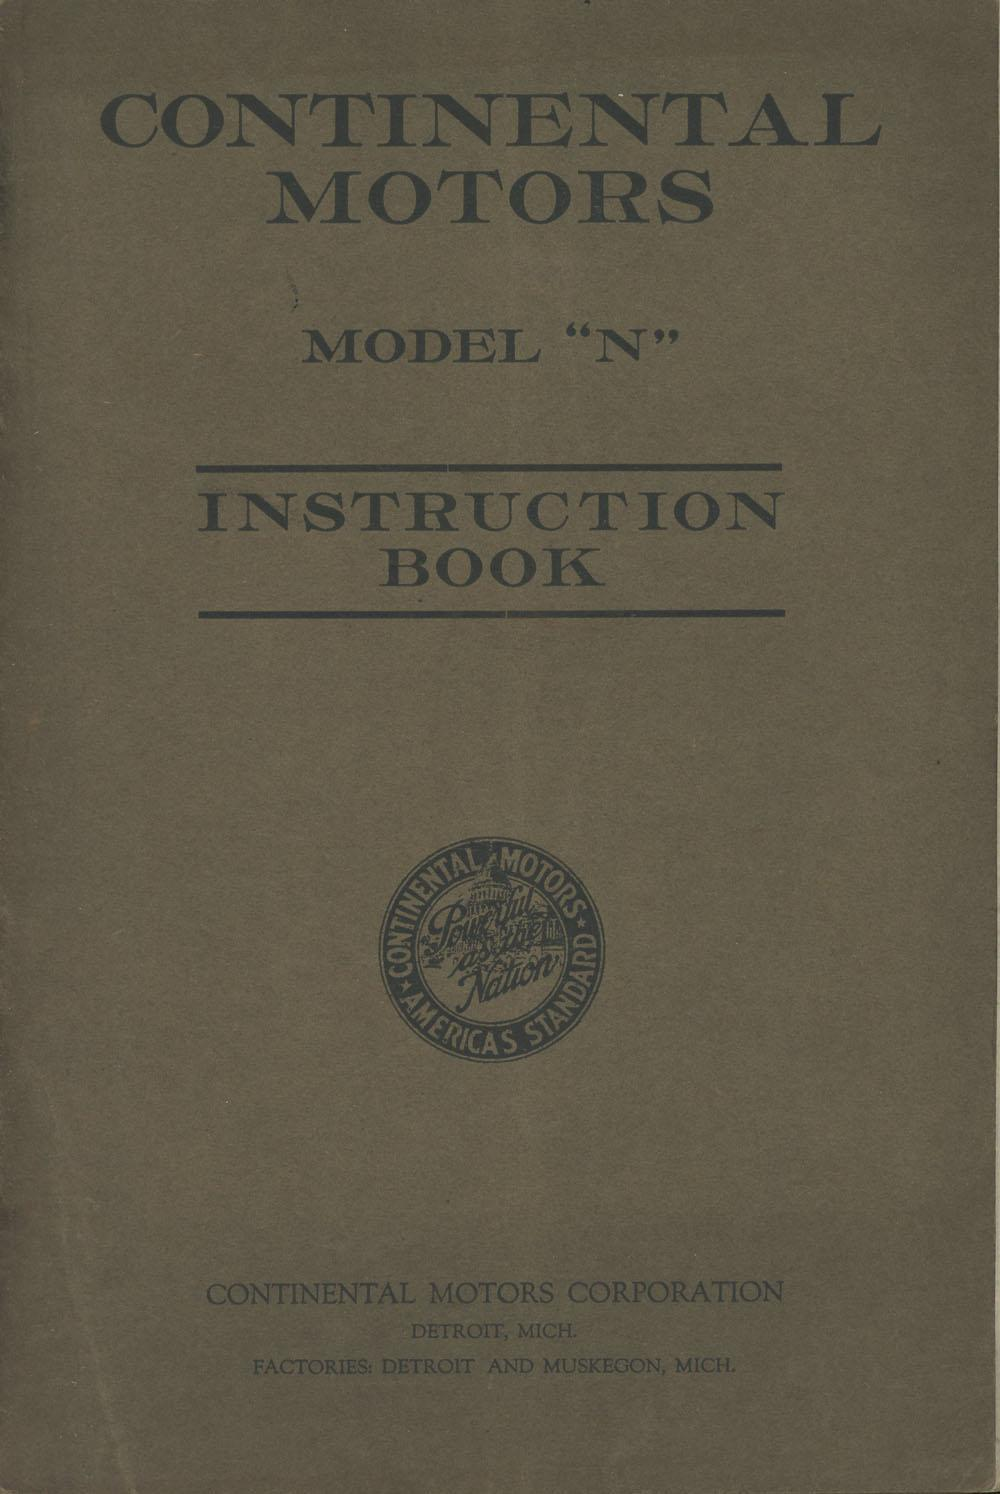 """Continental Motors: A Book of Instructions for the Care of Model """"N"""": n/a"""